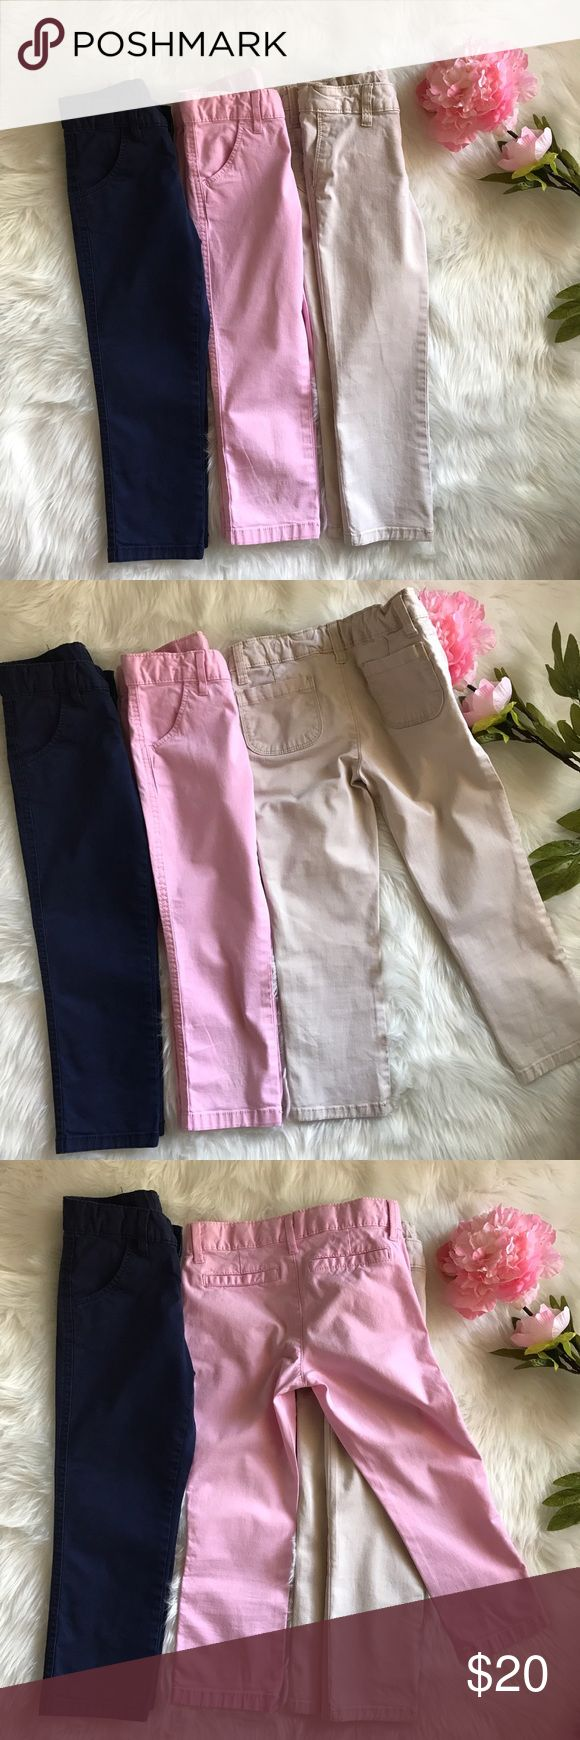 Girls Capris - Bundle of 3 Bundle of three capri pants. Size: 6 (Girls). In good condition. Colors: Navy Blue, Pink, and Khaki/Beige.  Beige pair has a tiny brown stain on the back of the right leg (pic #5). Also, the adjustable waist band has unraveled on the right side and only the first button hole works (pic #6). Pink pair has three tiny black stains on the bottom front of the left leg (pic #7). Faded Glory Bottoms Casual